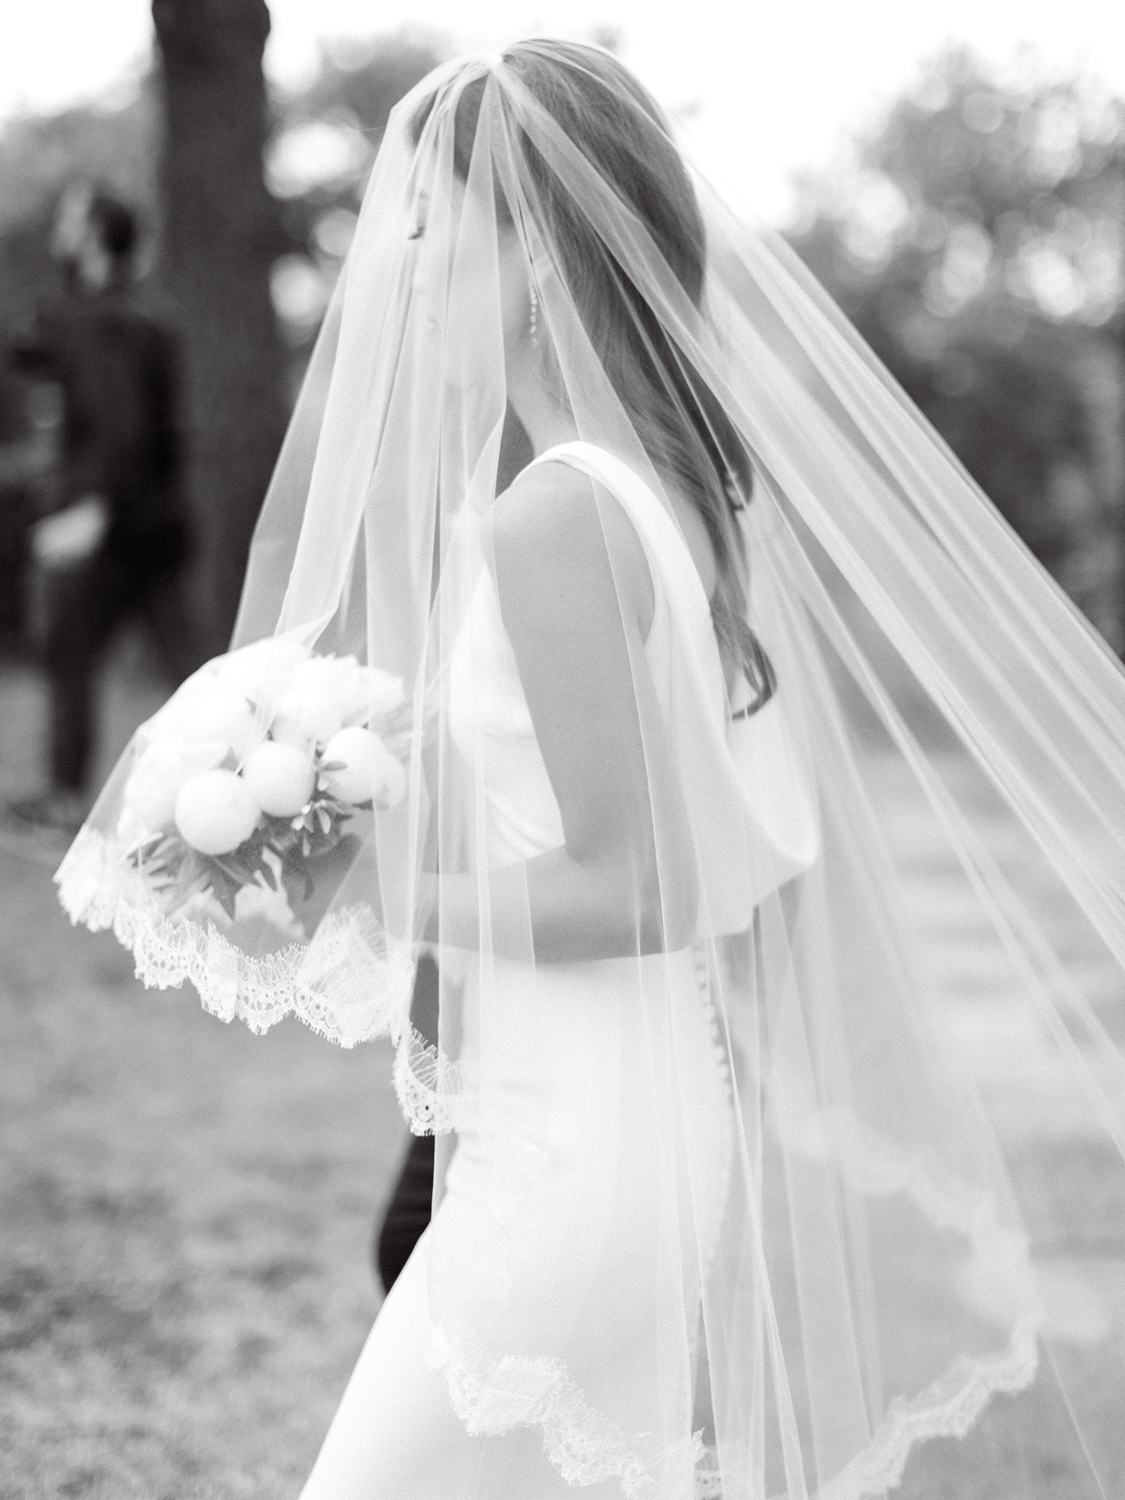 elegsnt black and white photo of bride walking down the aisle with her veil